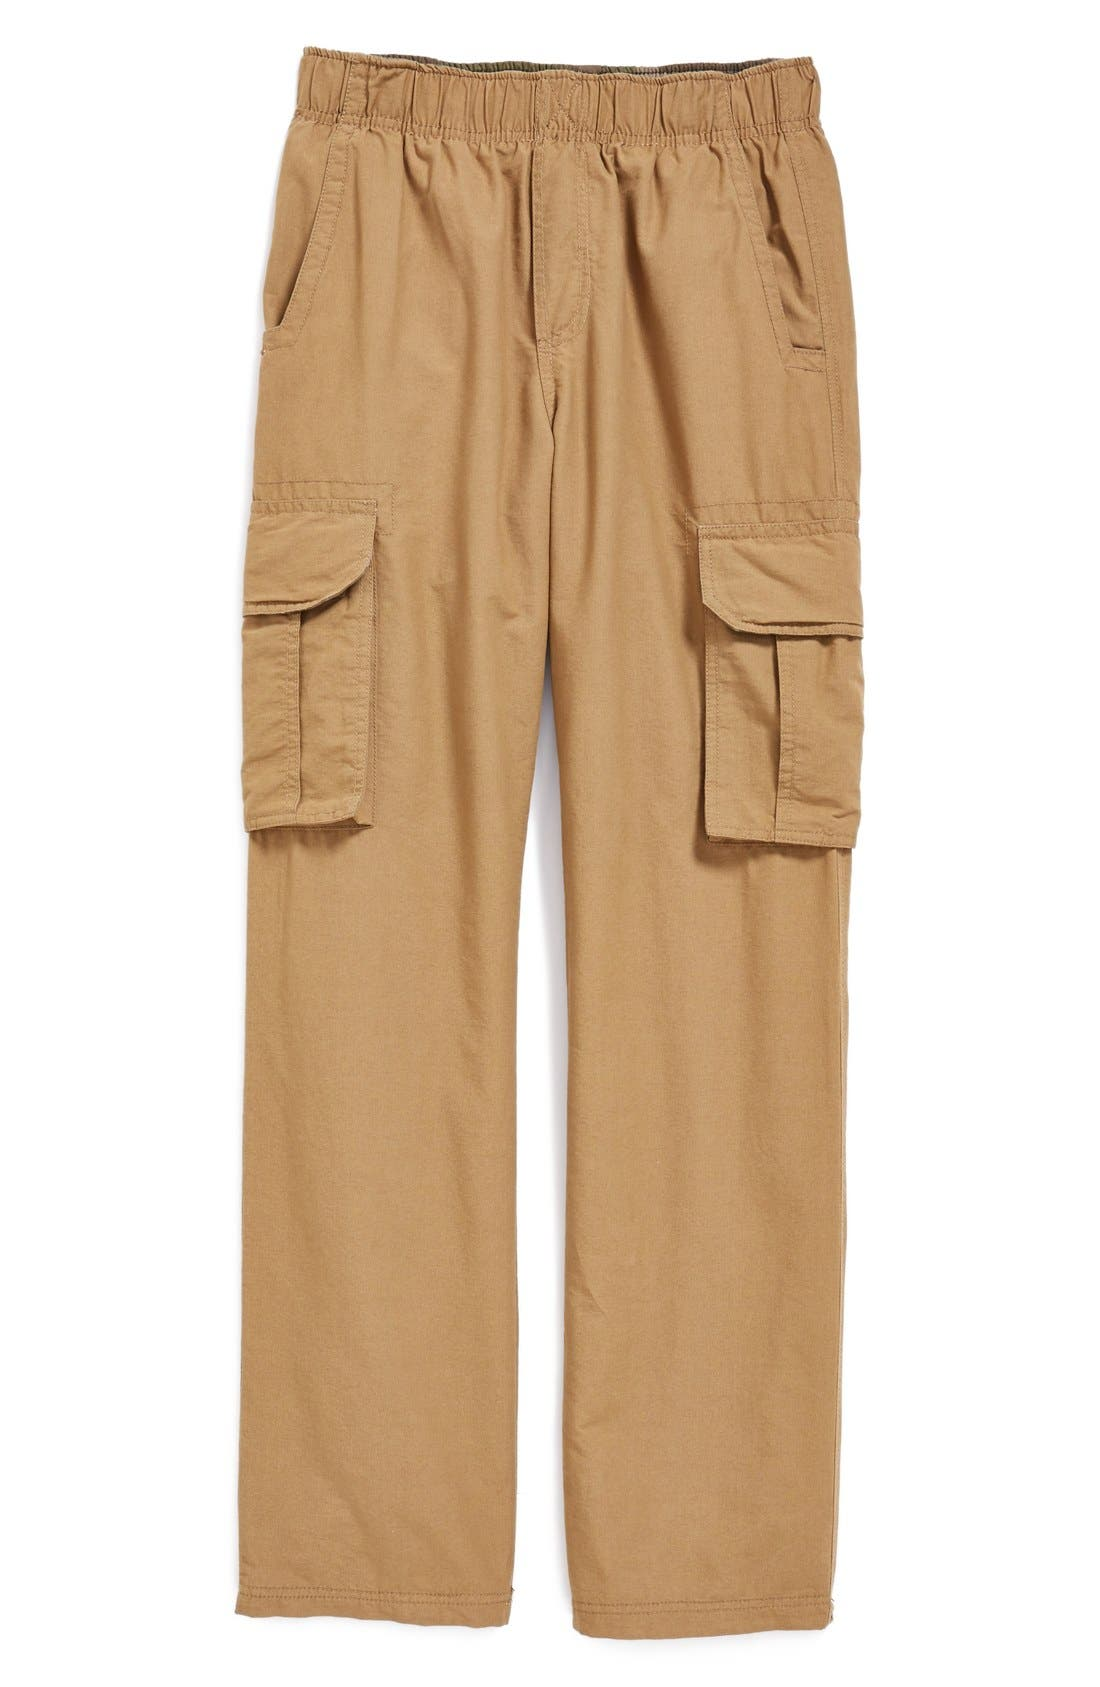 Alternate Image 1 Selected - Tucker + Tate 'Zephyr' Cargo Pants (Toddler Boys & Little Boys)